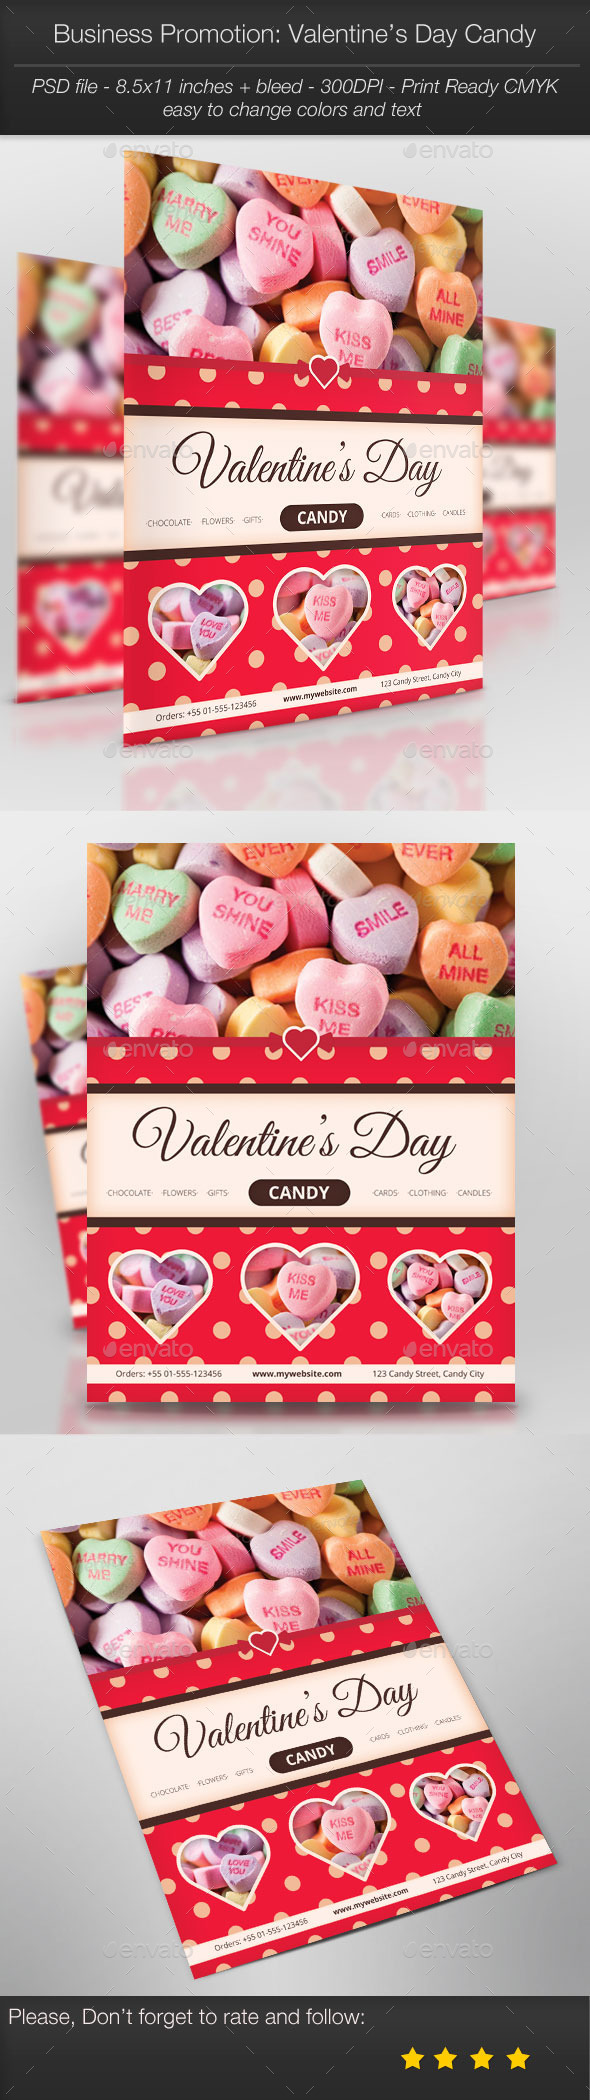 Business Promotion Valentine's Day Candy